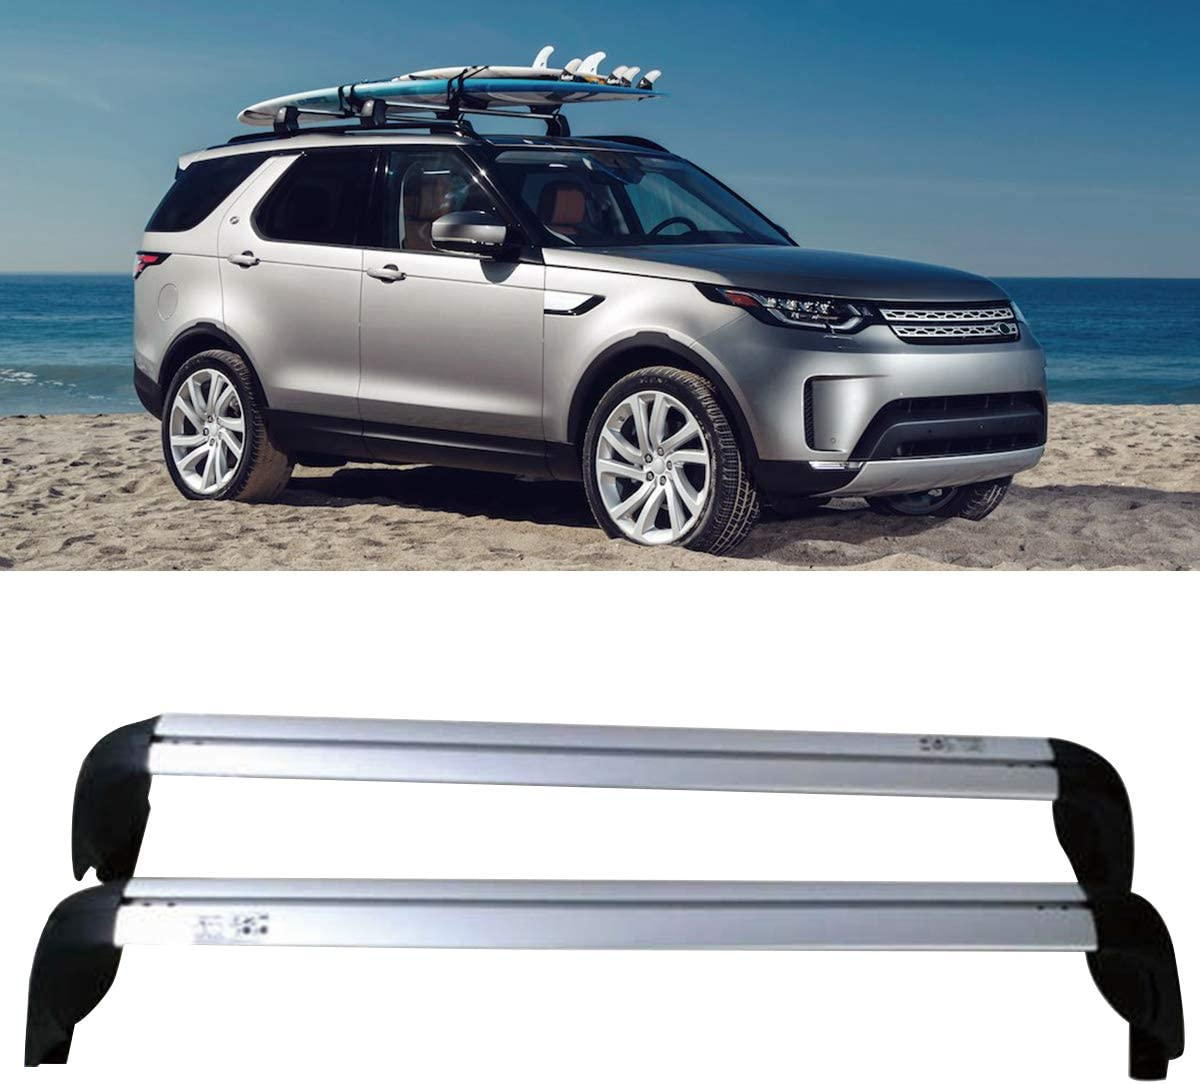 Pair Aluminum Cross Bars for Land Rover Discovery 5 2017-2019 Luggage